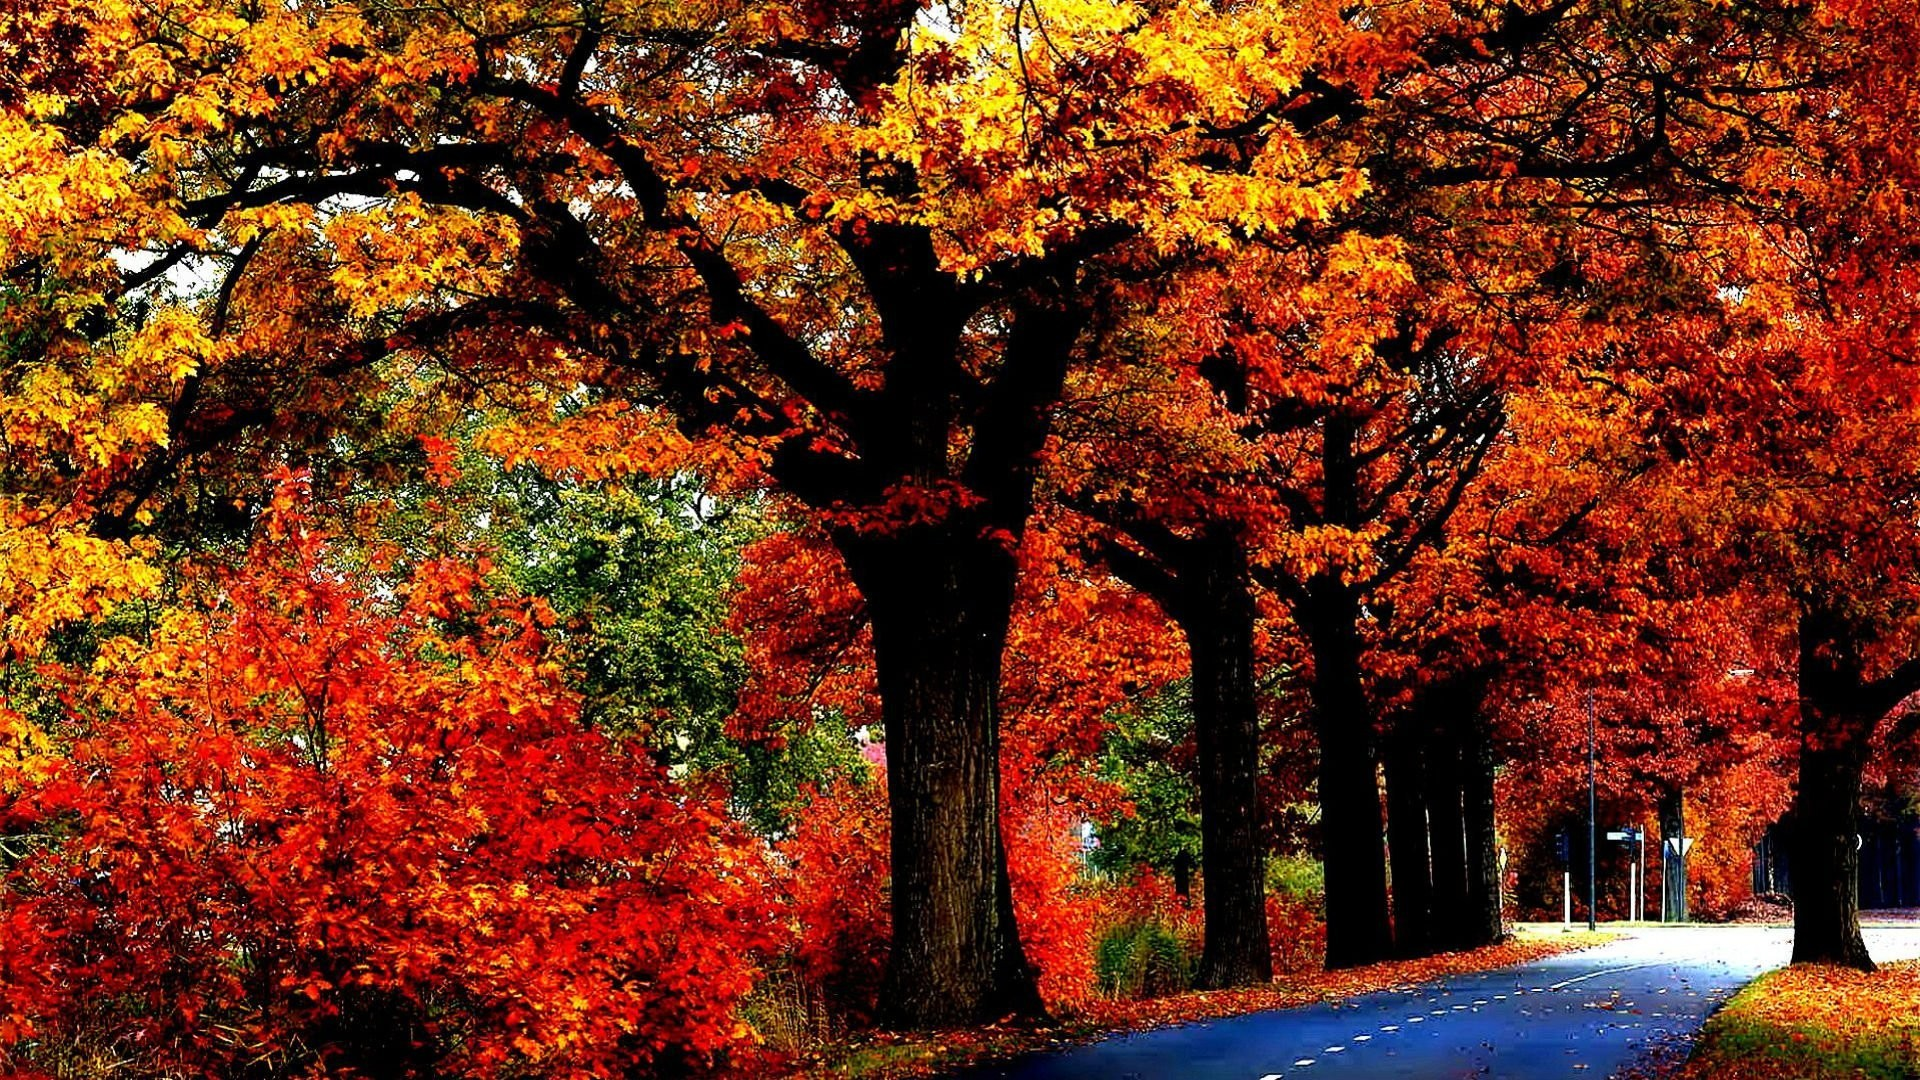 Res: 1920x1080, Tree Leaves Autumn Fall Nature Landscape Forest Wallpapers Hd 1080p Detail